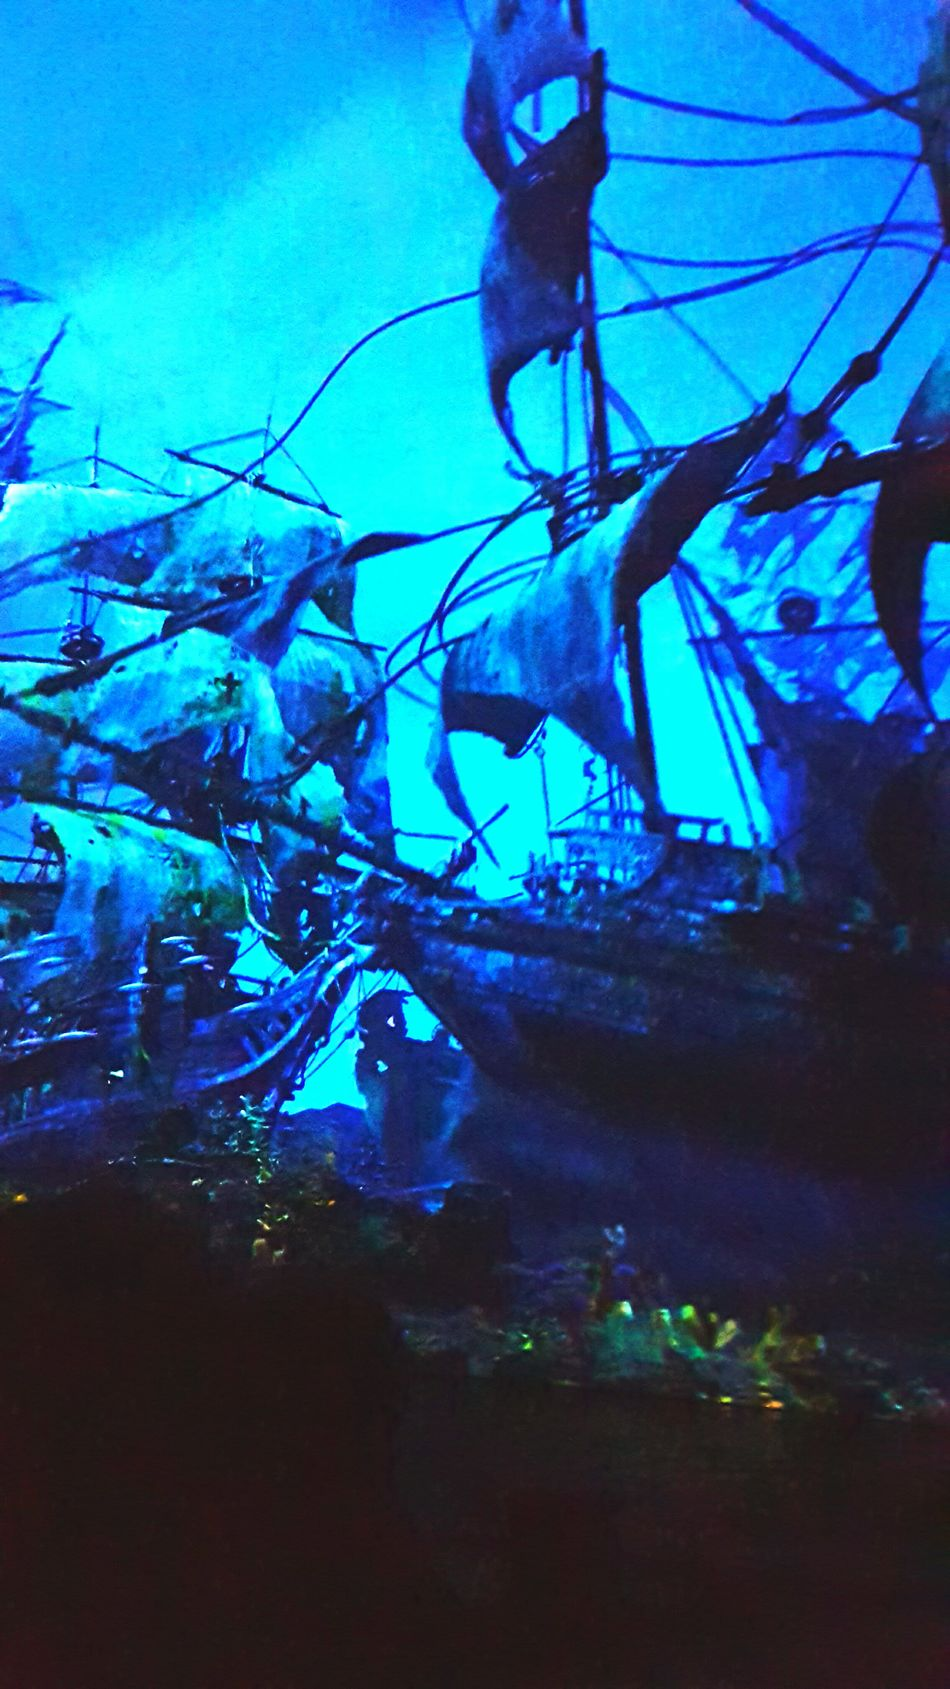 Underwater Low Angle View Sea UnderSea Night Water Outdoors People Nature Sky Only Men Sea Life Pirateship  Pirate Pirates Of The Caribbean Disneyland Disney Captain Jack Sparrow Pirate Ship Johnny Depp